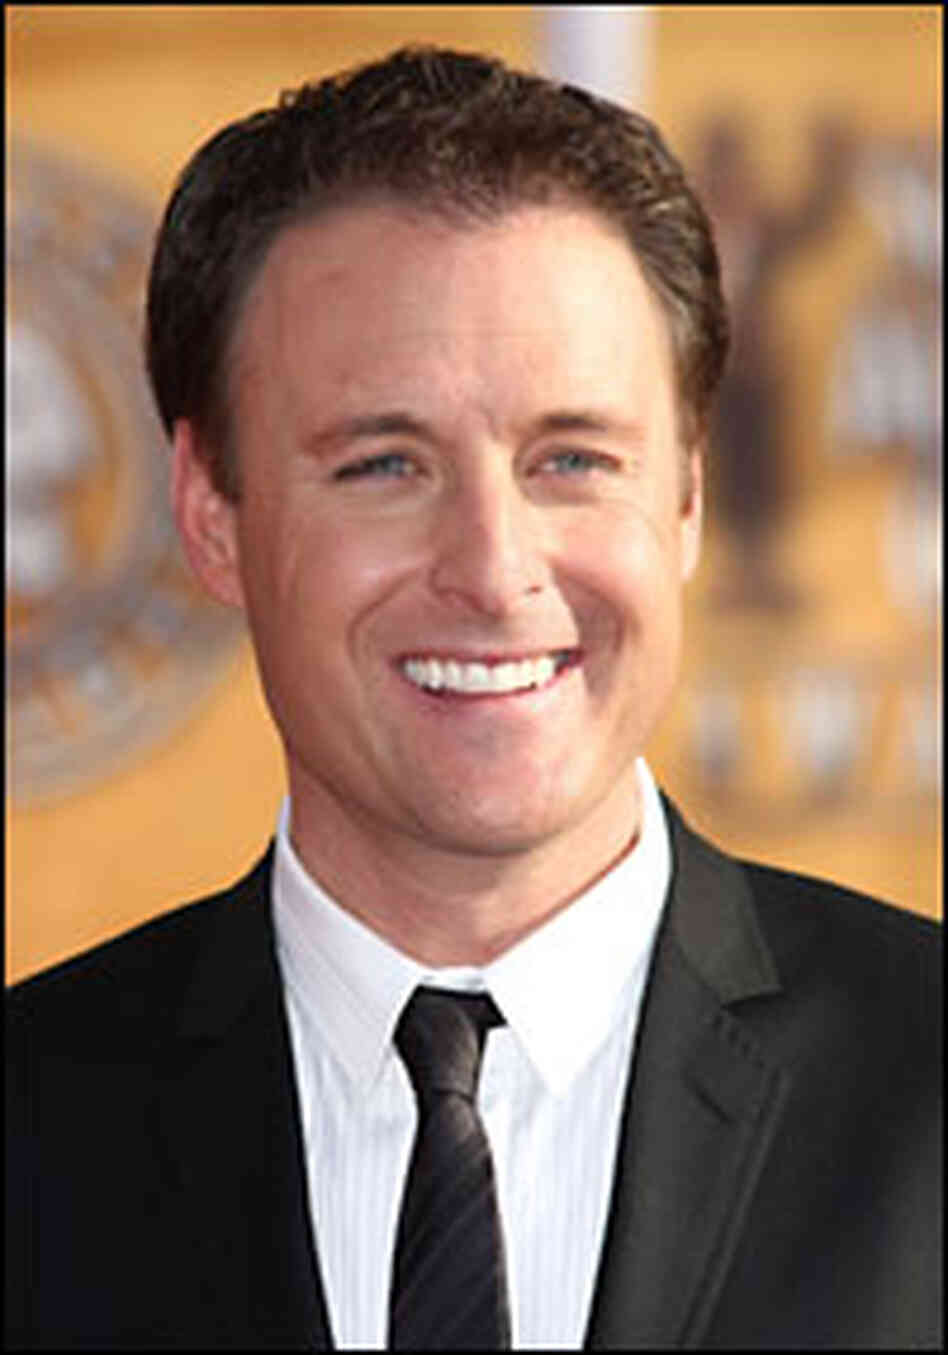 'The Bachelor' host Chris Harrison